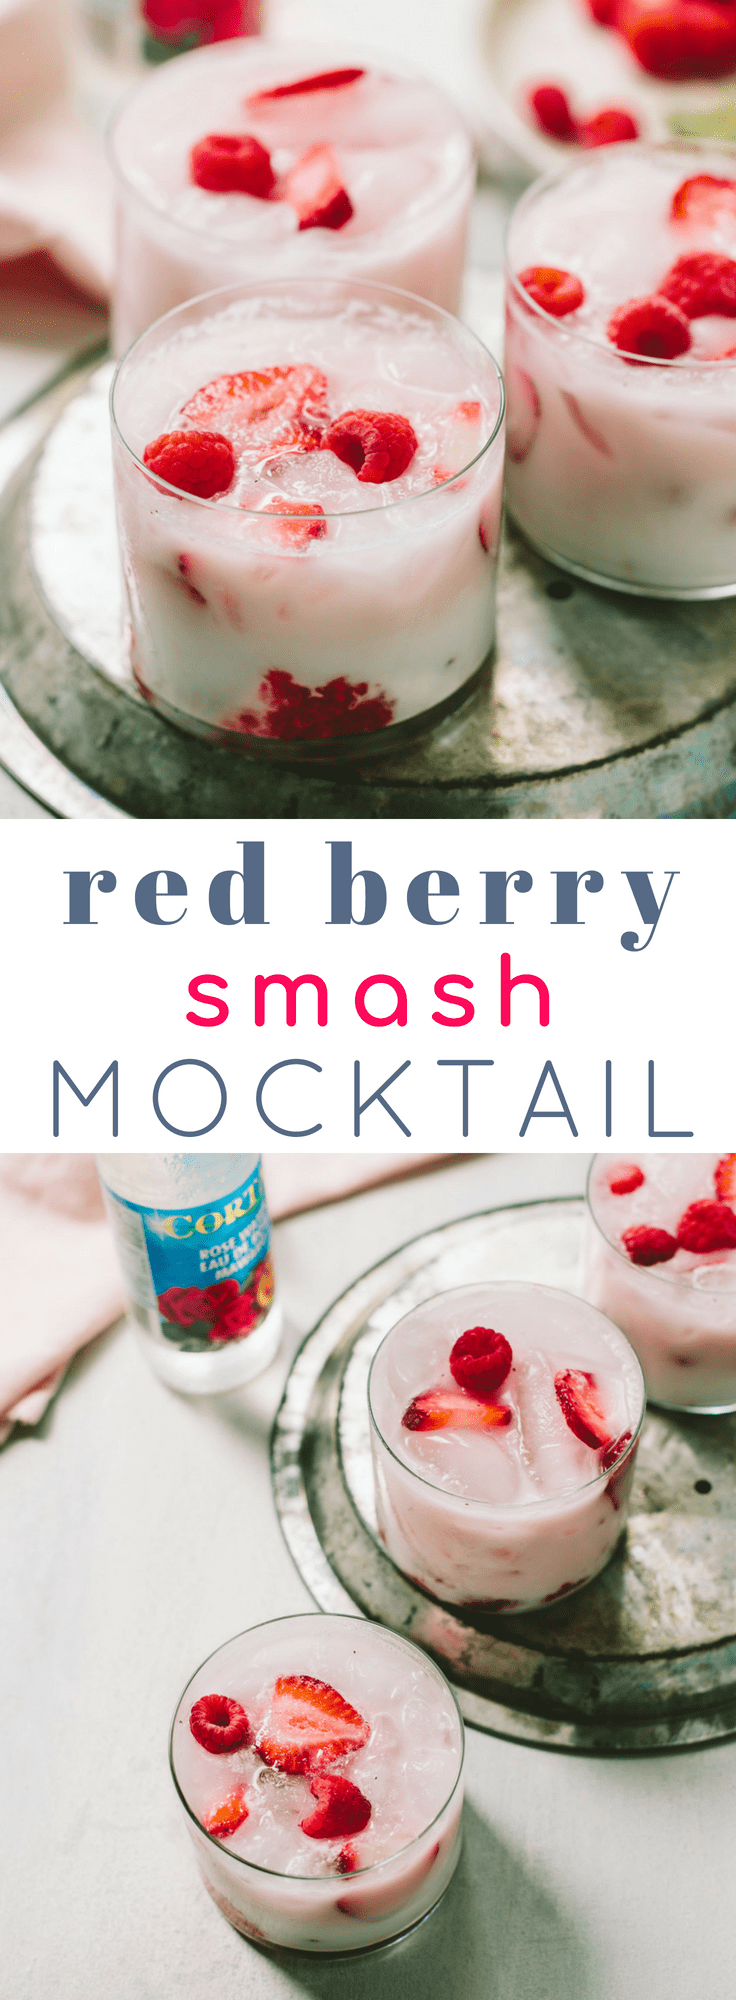 Coconut and Rosewater Red Berry Mocktail Smash #cocktails #pink #healthy #parties #nonalcoholic